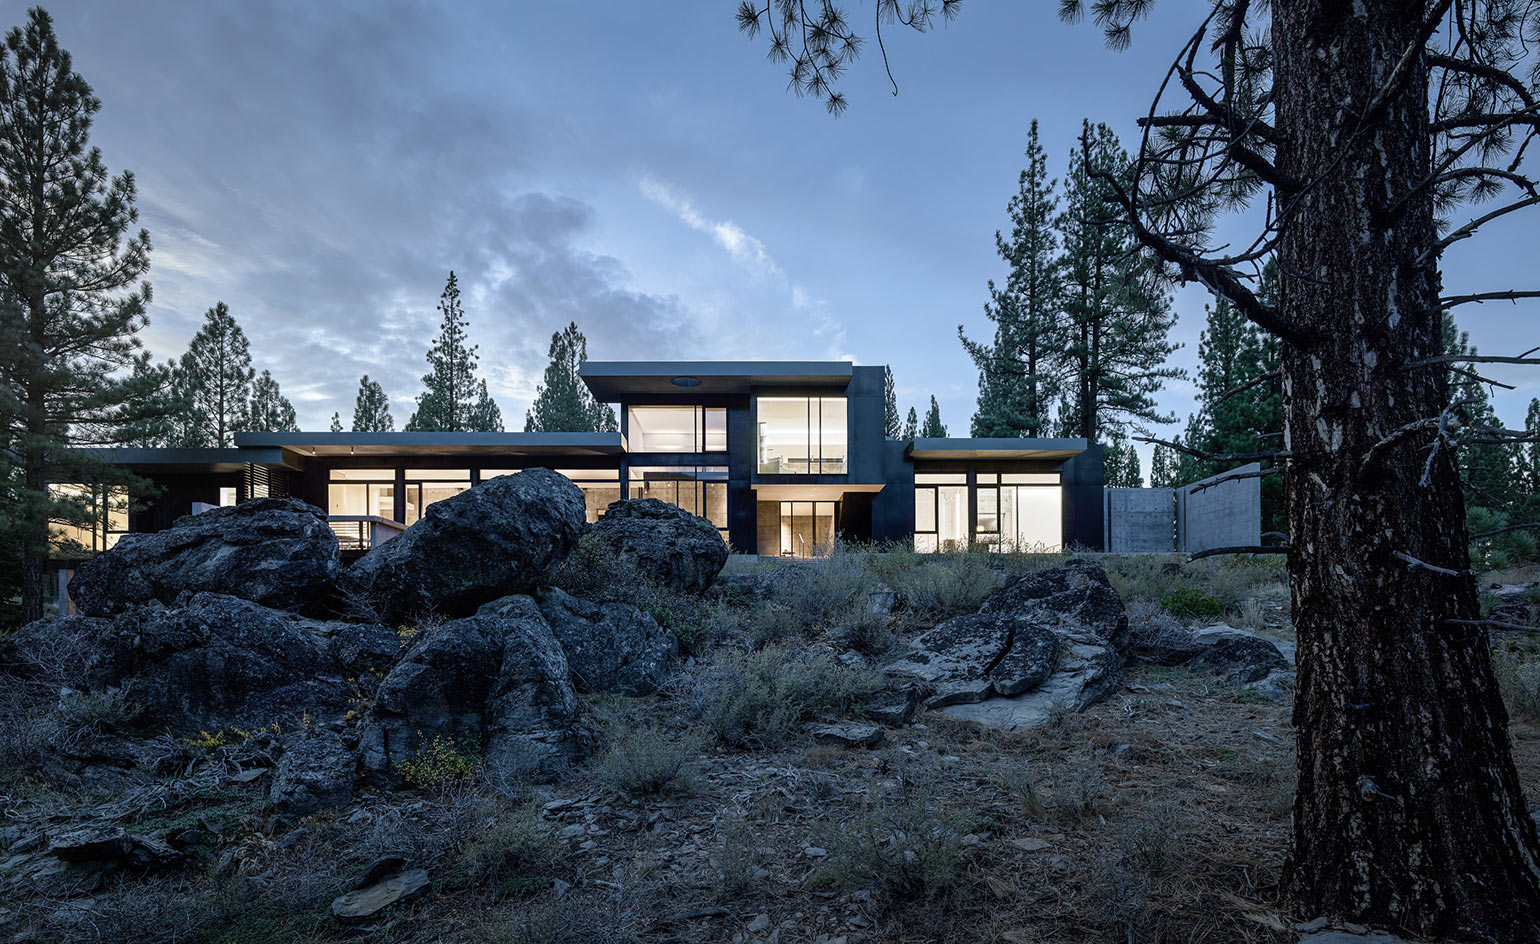 Creek House, by Faulkner Architects, from Wallpaper